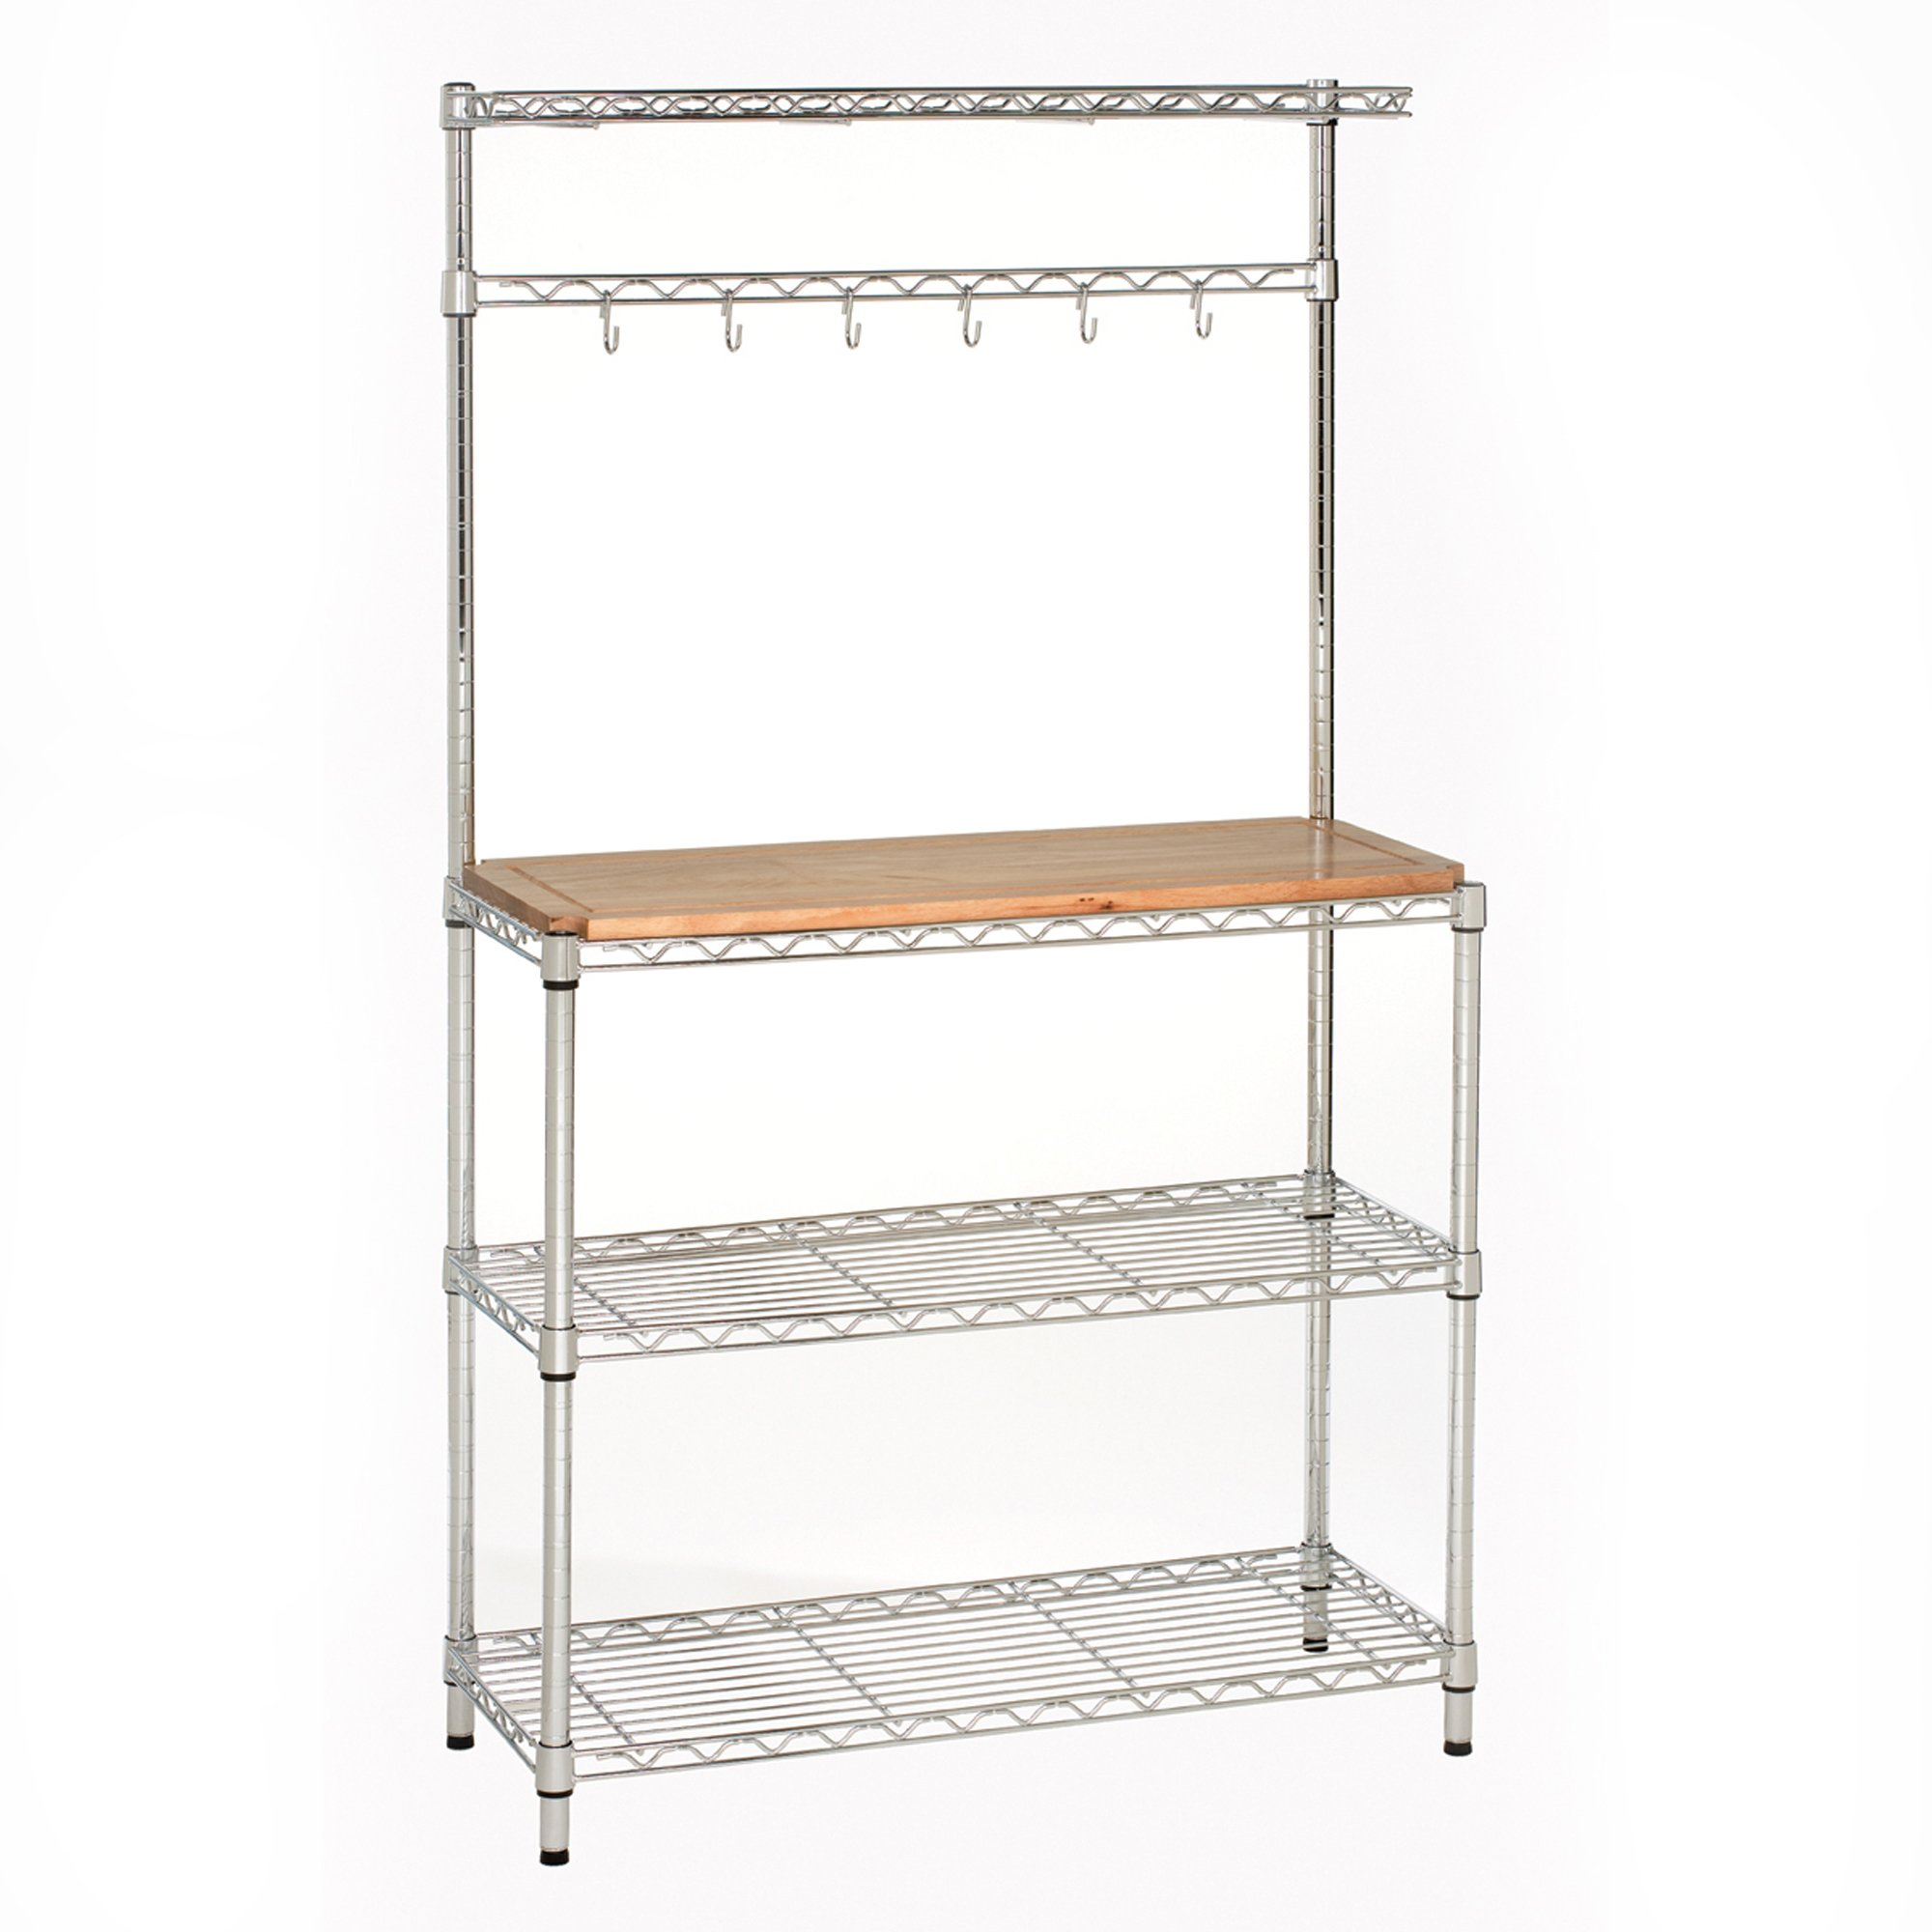 Seville Classics Baker's Rack for Kitchens, Solid Wood Top, 14'' x 36'' x 63'' H